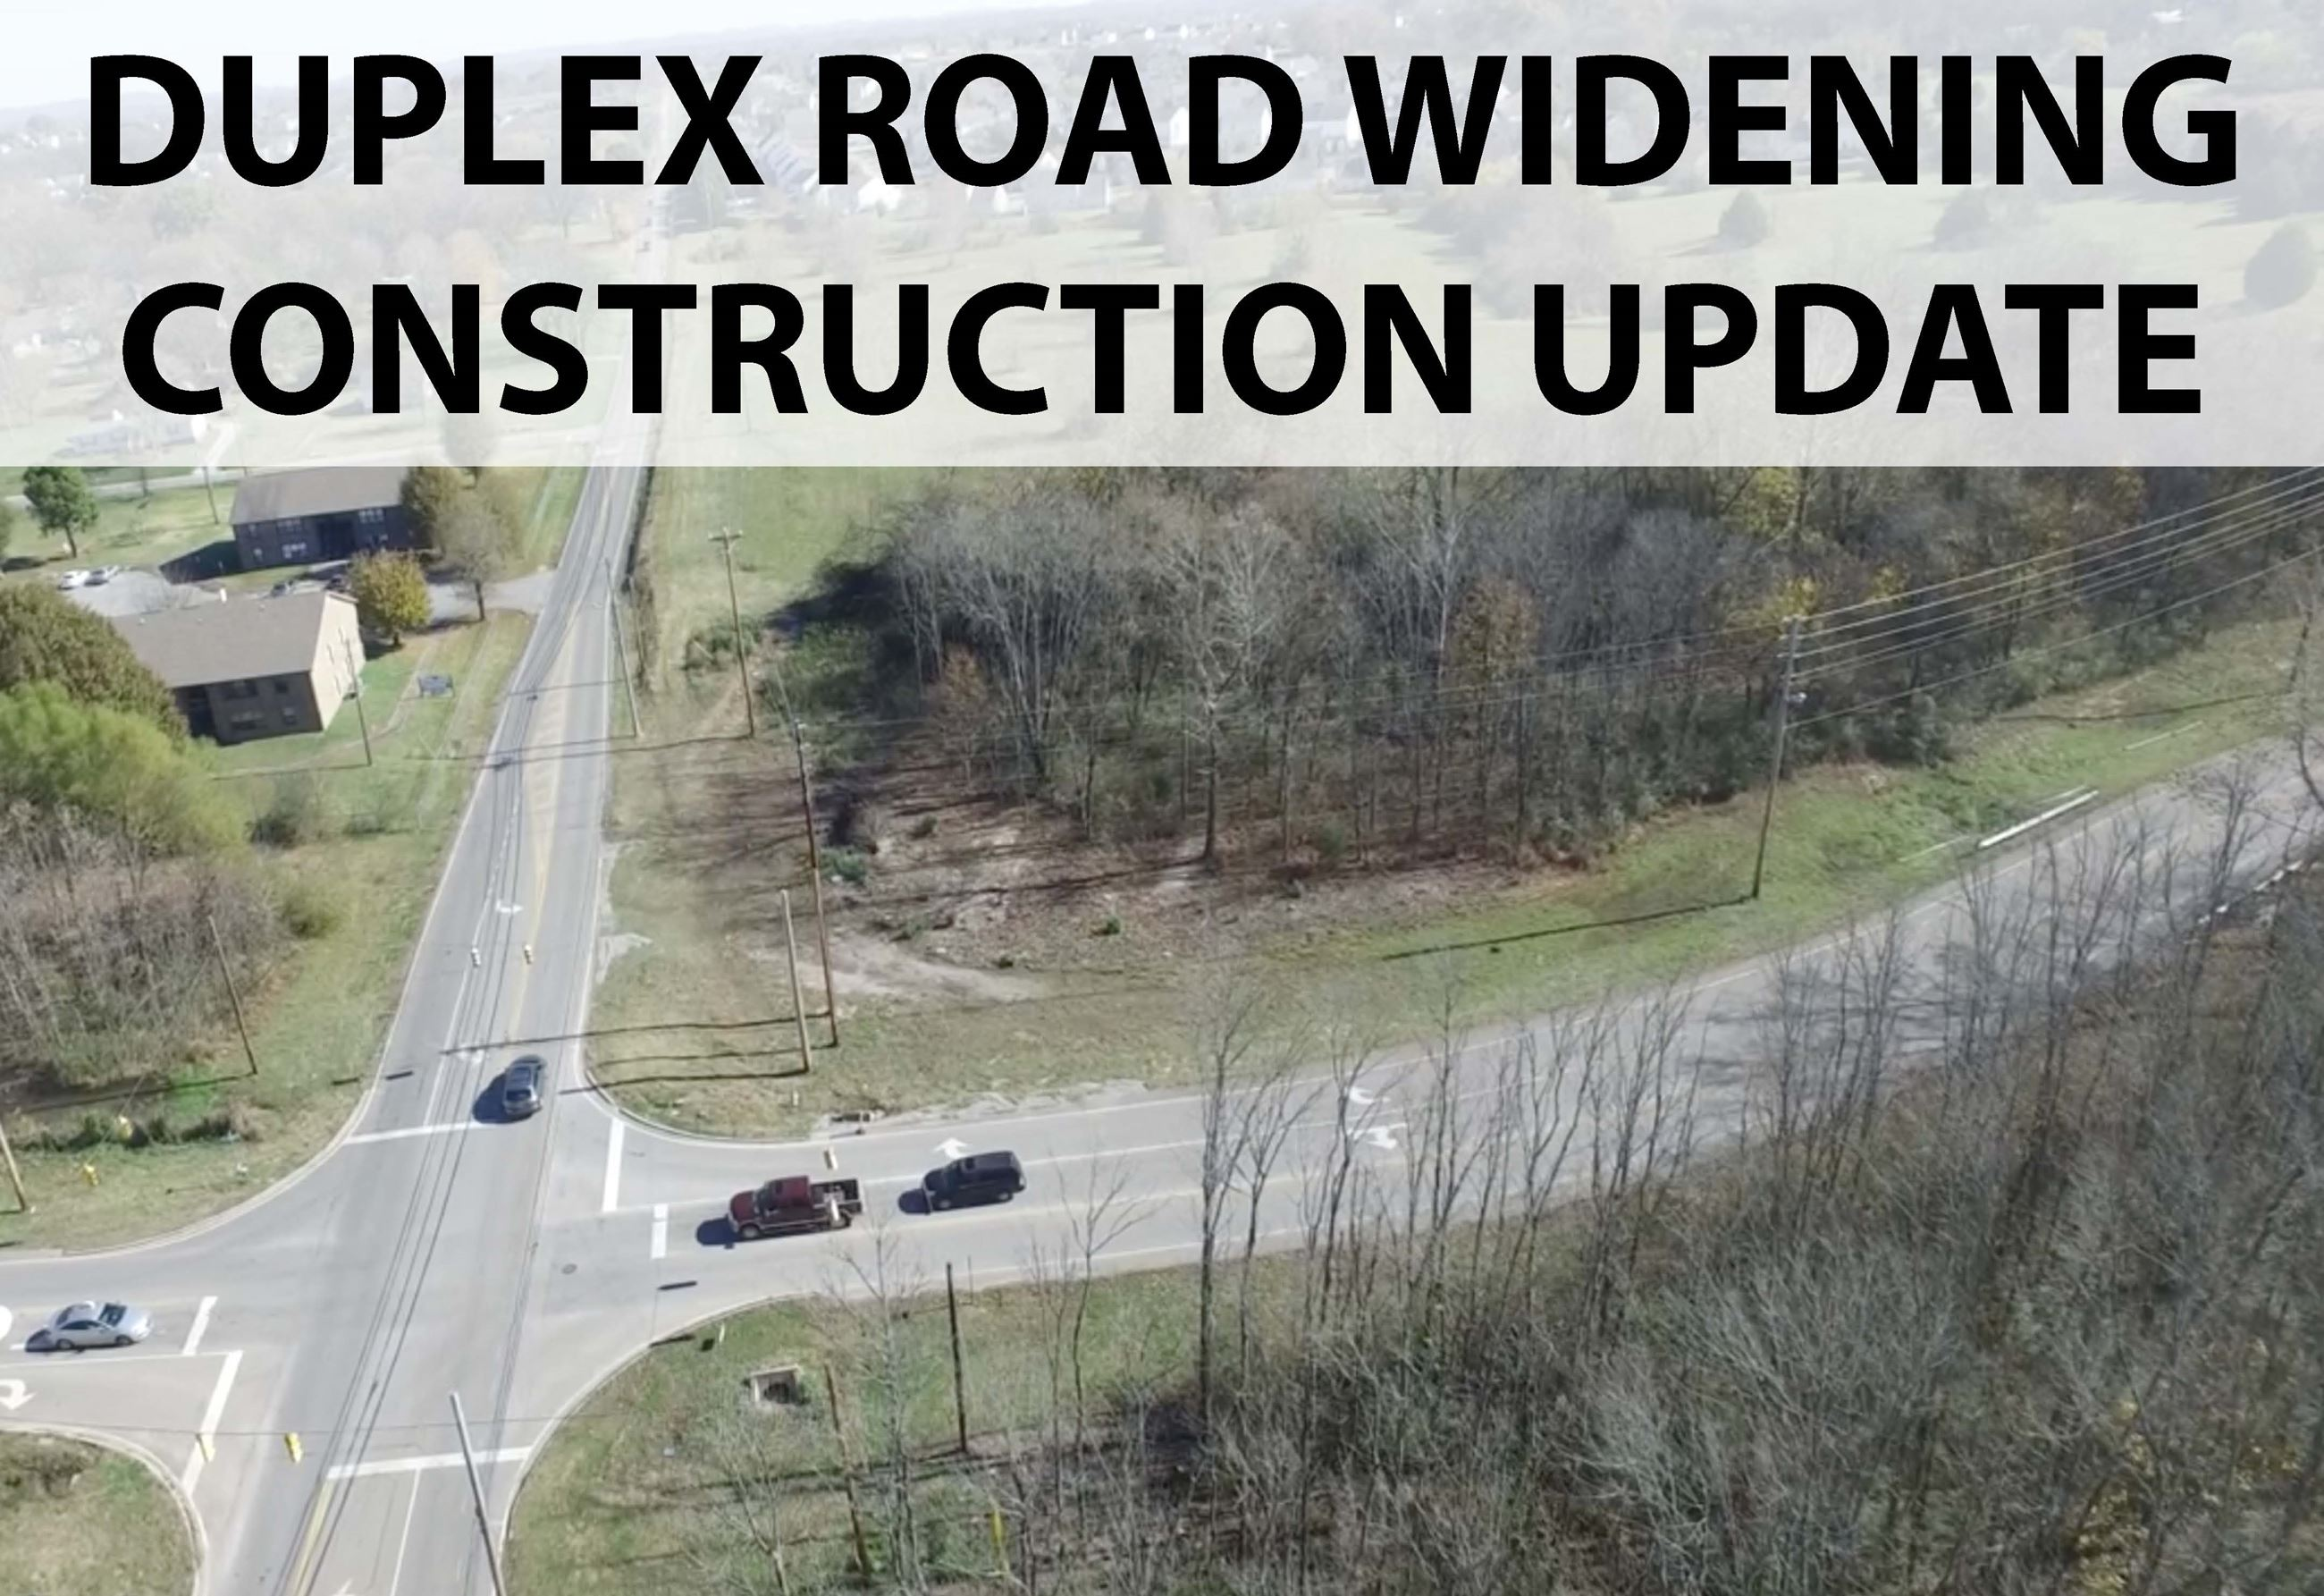 Duplex Road widening update